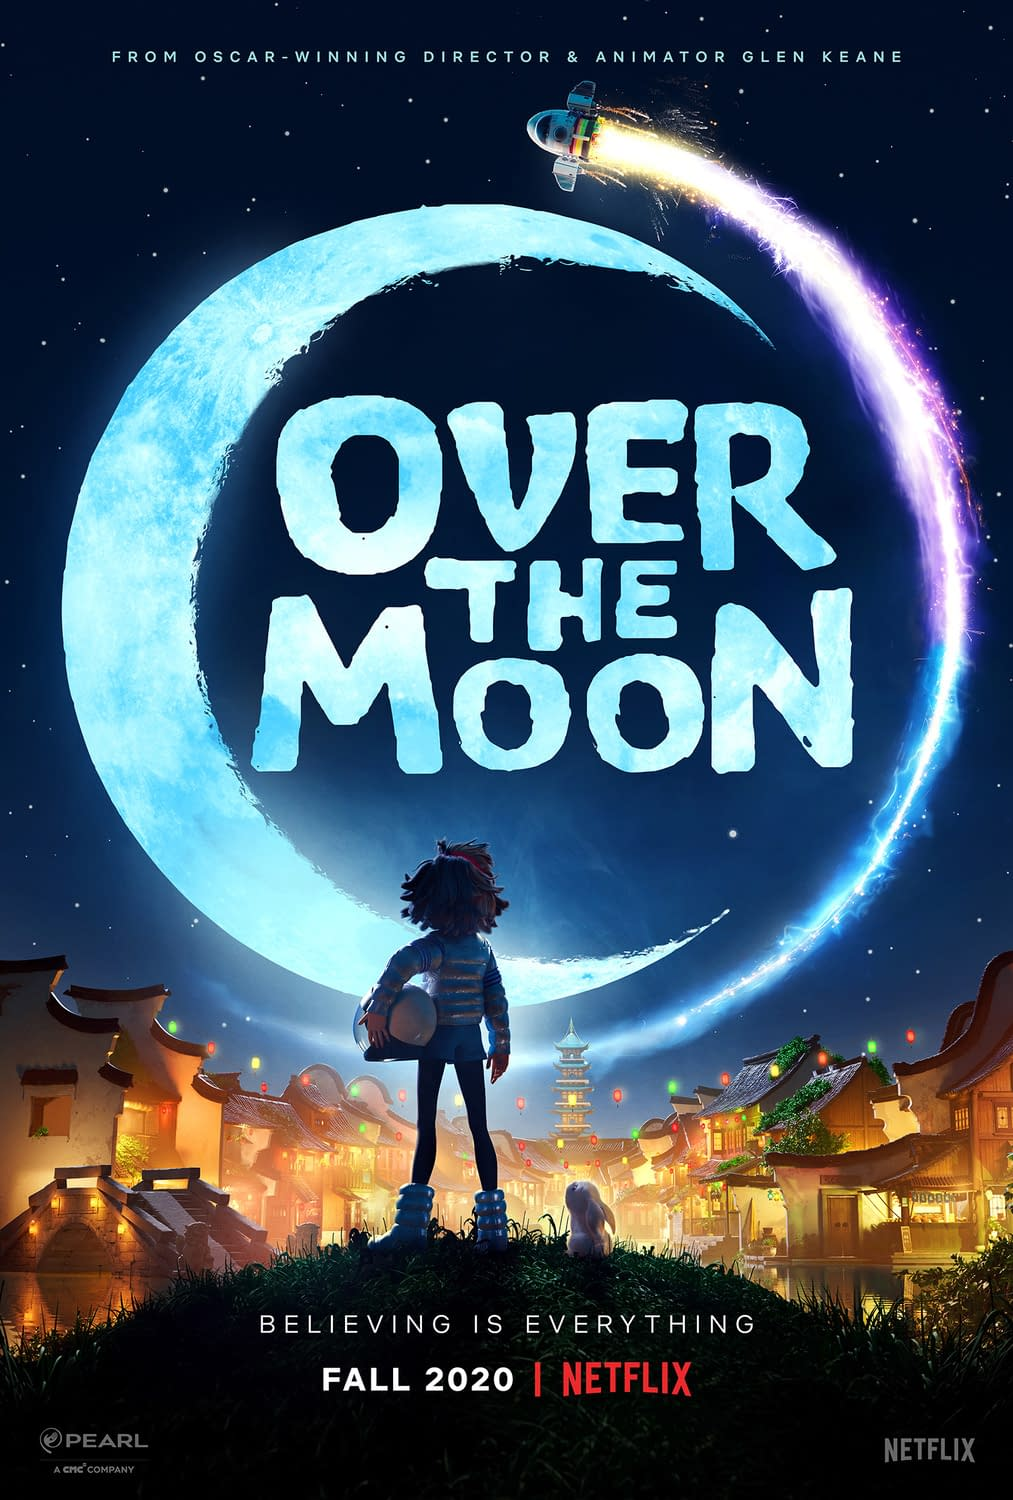 Over The Moon Trailer And Poster Debut For Netflix Animated Feature